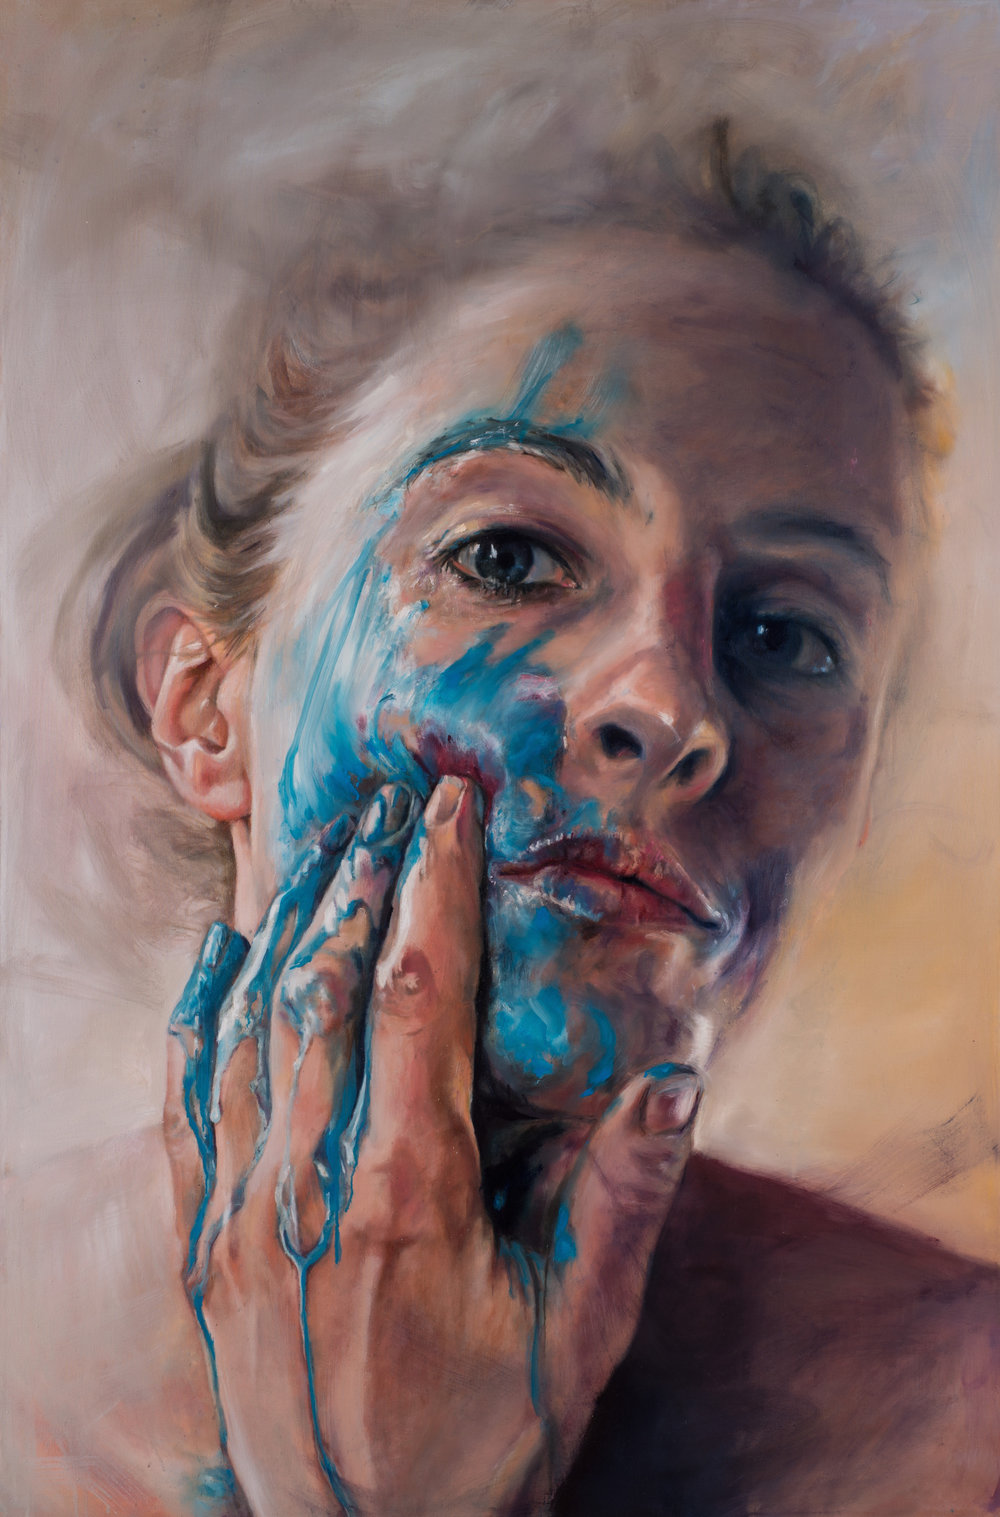 Cerulean, 114x170cm, Oil on Canvas (SOLD)